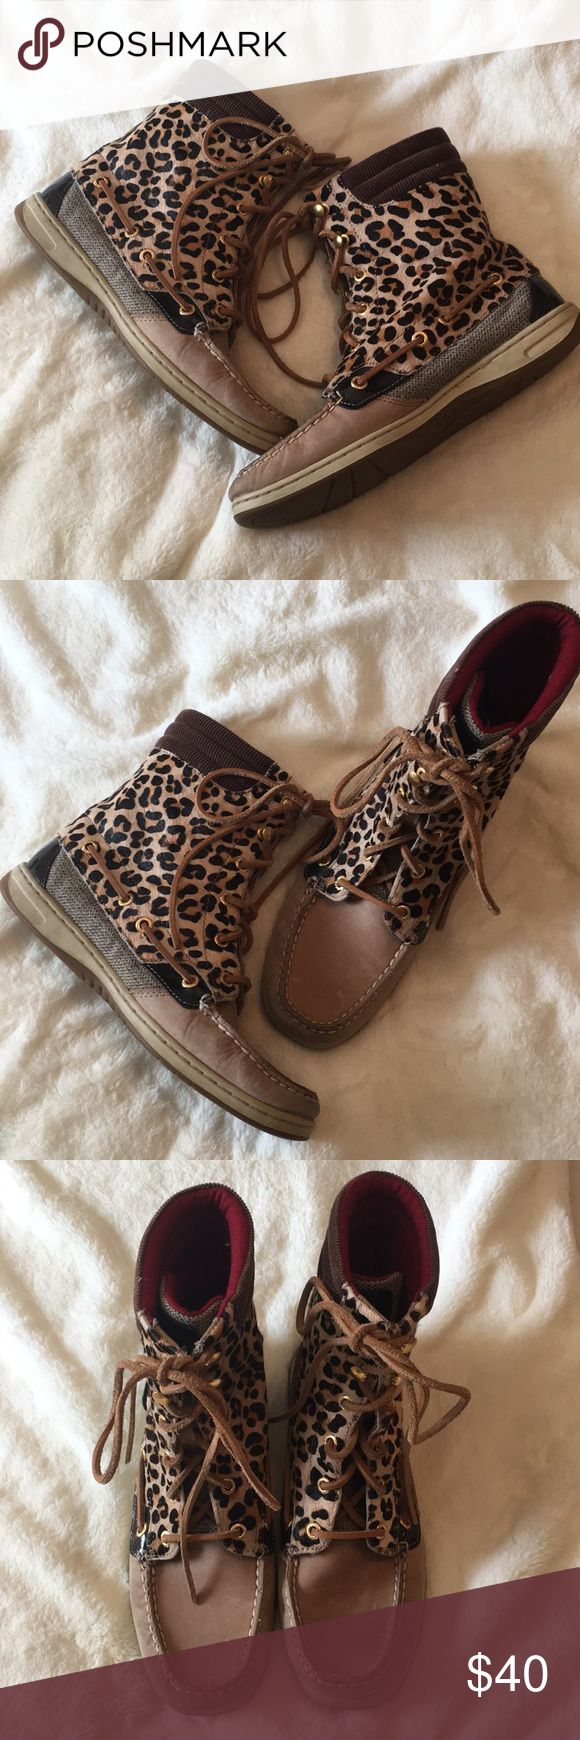 Leopard Sperry Boots! Gently worn, still very clean!! Sperry Shoes Lace Up Boots